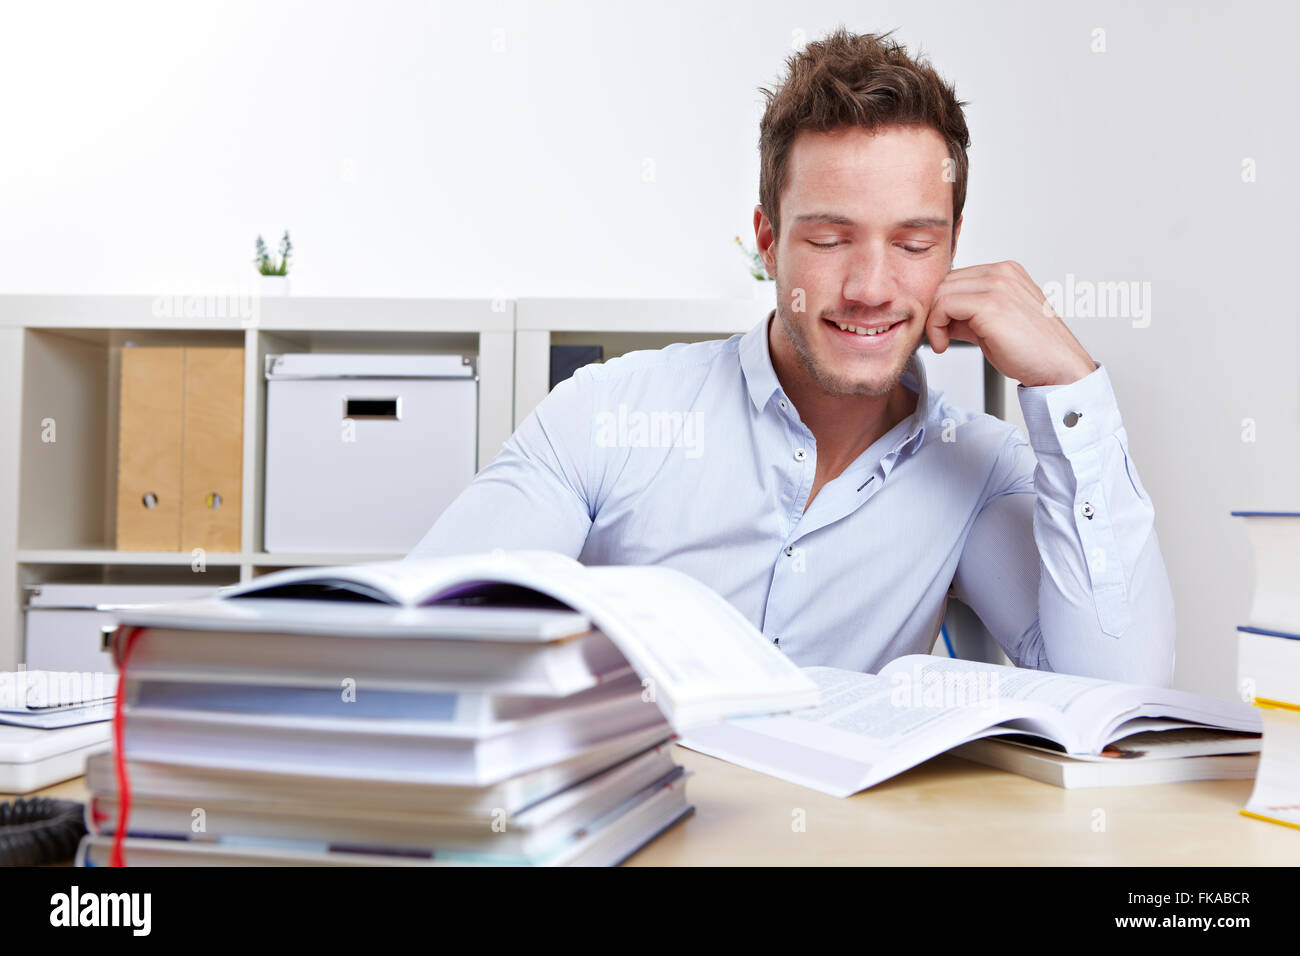 Happy college student learning with books at desk for exams Stock Photo